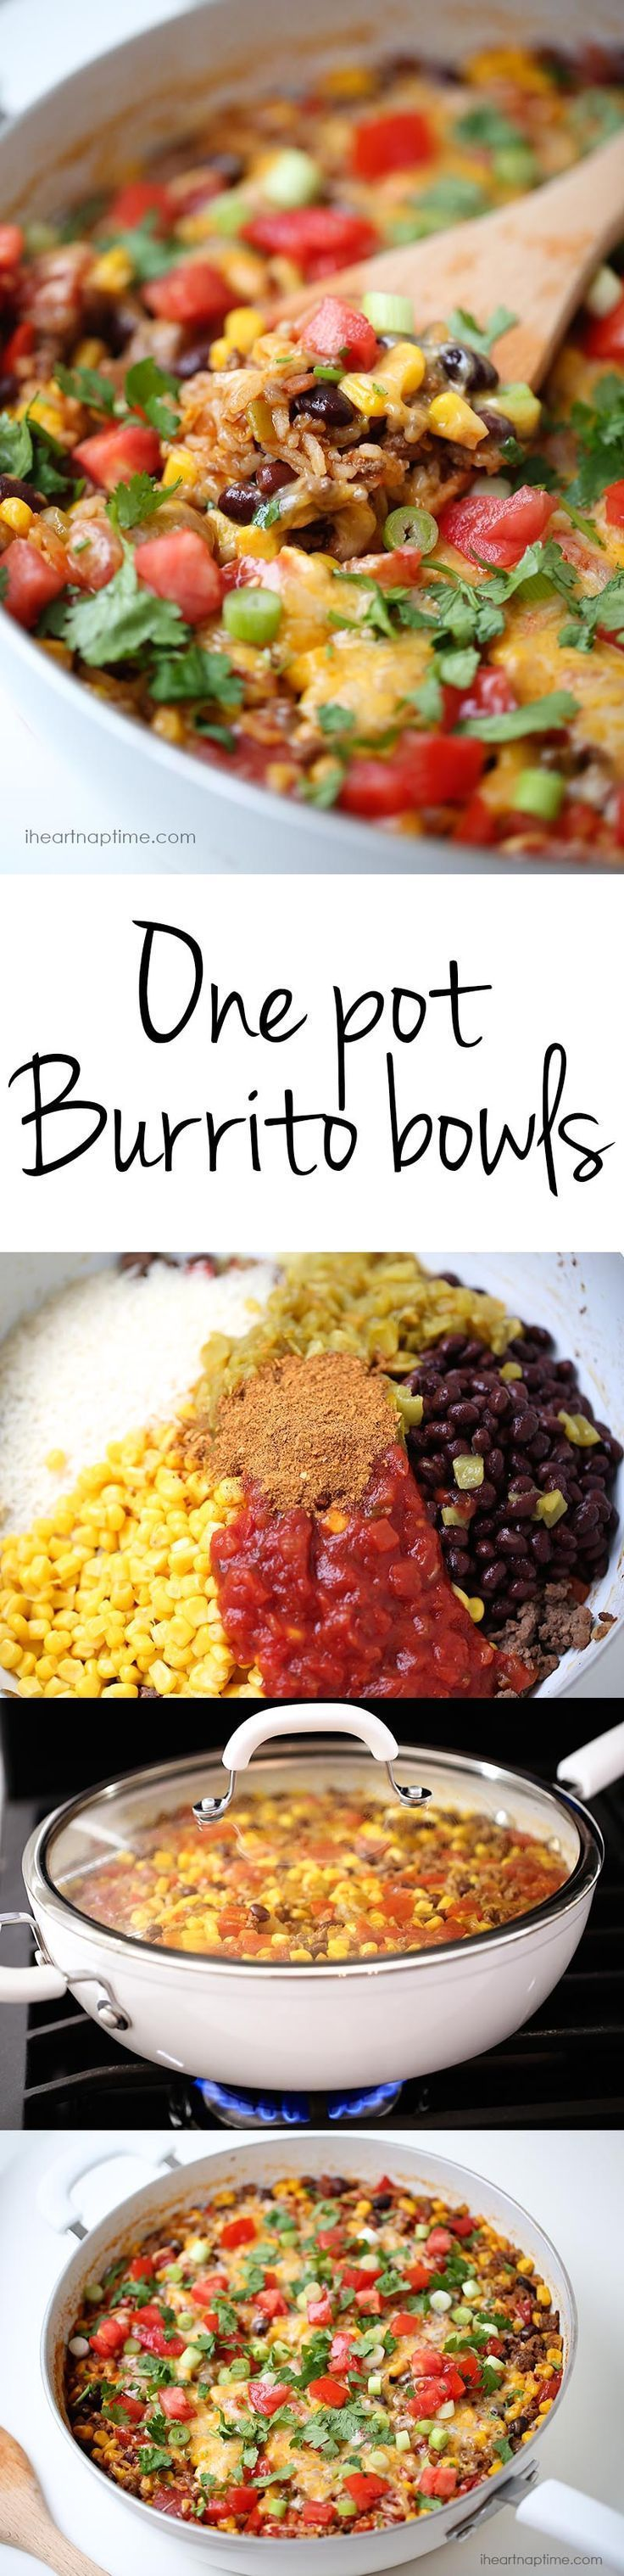 One pot 30 minute burrito bowls recipe mexican food easy dinner one pot 30 minute burrito bowls recipe mexican food easy dinner forumfinder Choice Image